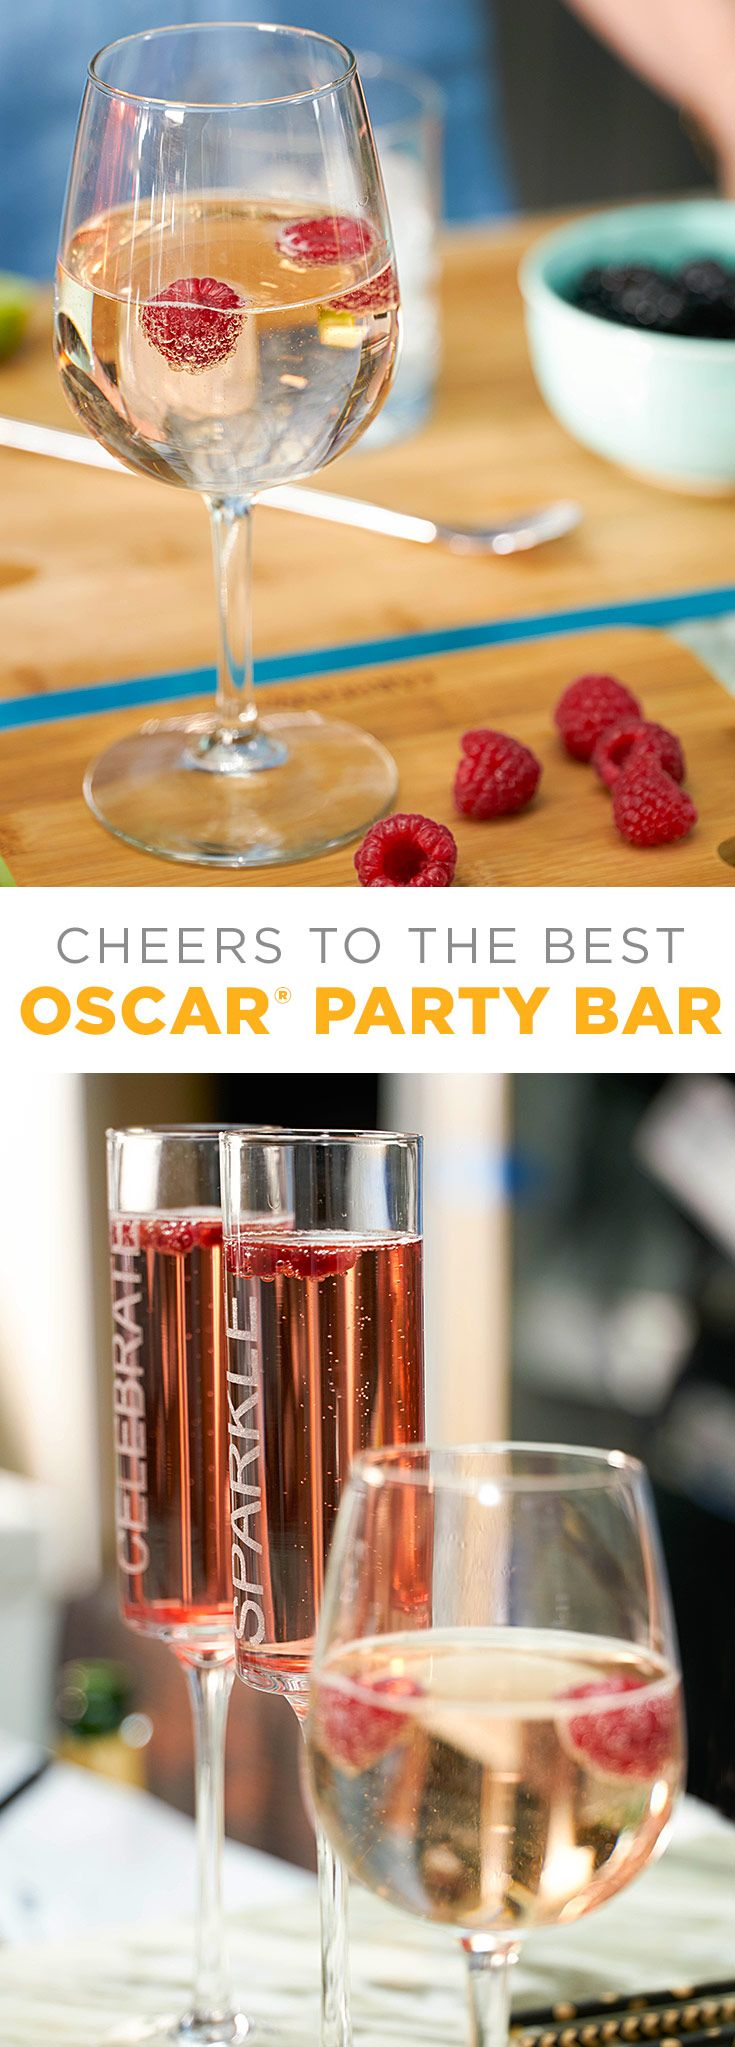 Champagne is perfect on its own or used as a mixer on your Oscar party buffet bar. Set out different ingredients—fruits, liquors, seltzer, assorted types of champagne and anything else you think guests will like—and let your guests create their own signature cocktail. You might even consider presenting a golden statue to the person with the best original cocktail. #AllTheGoodStuff